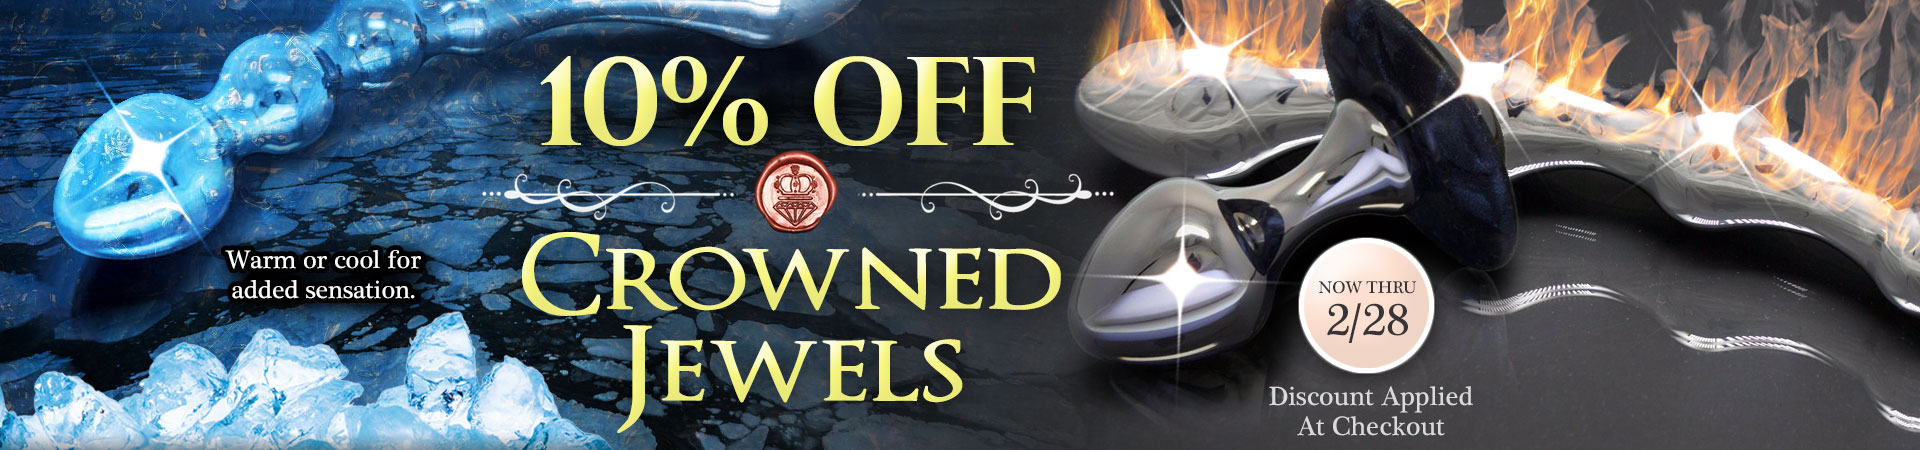 10% Off Crowned Jewels - Now Thru 2/28 - Discount Applied At Checkout